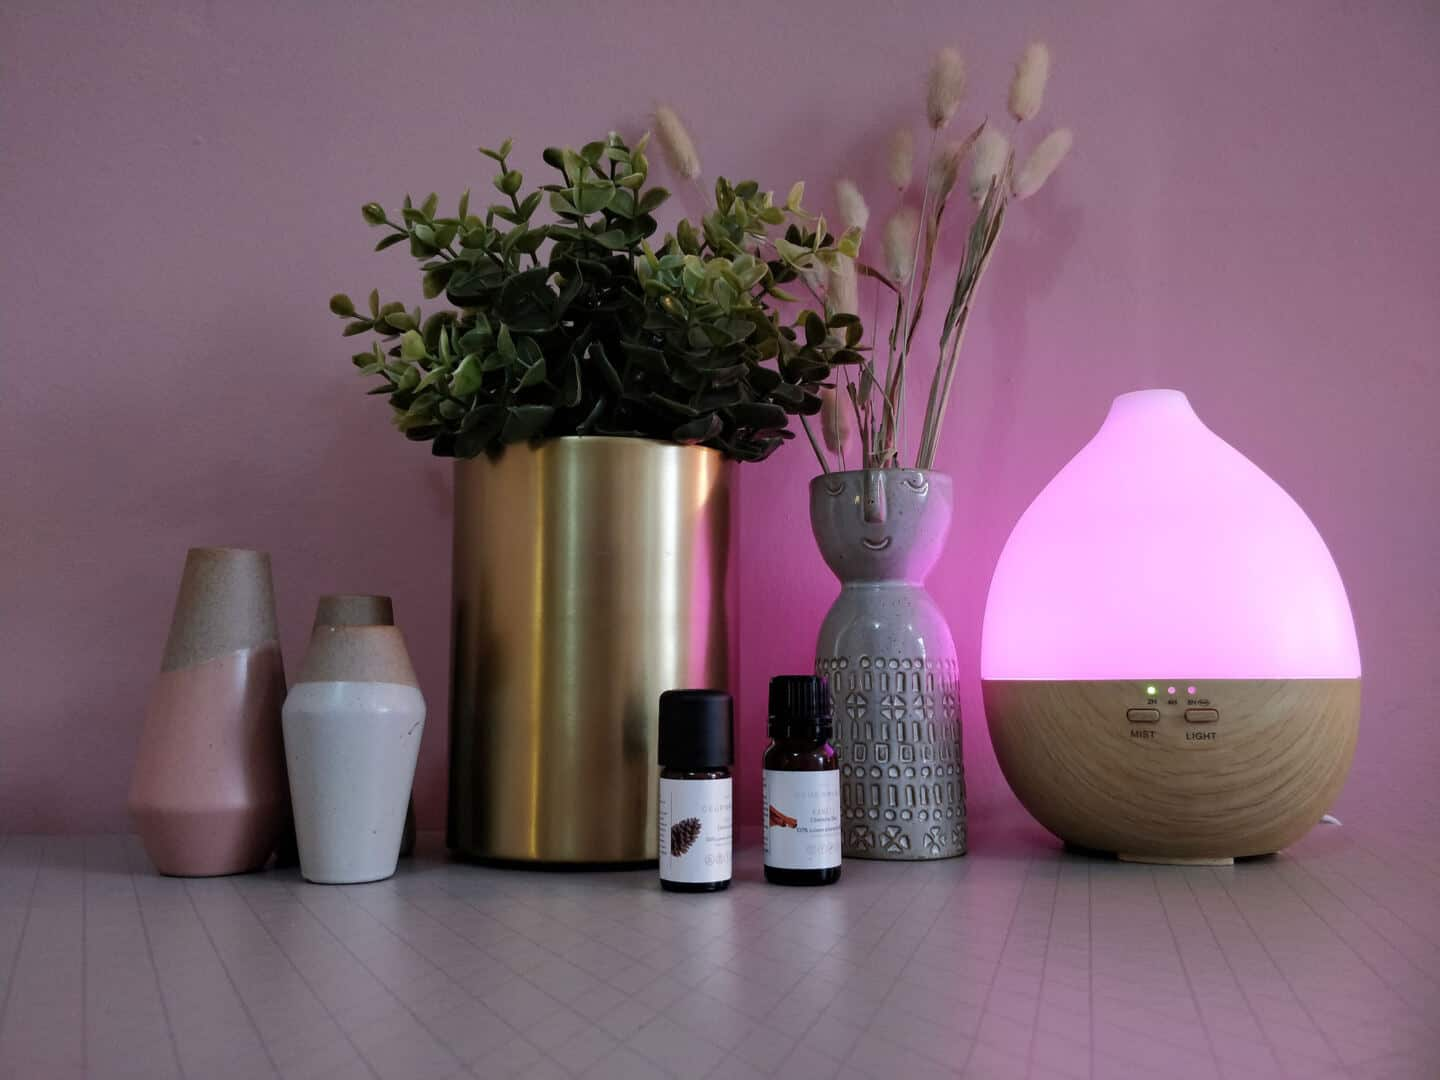 Smellacloud aroma diffuser with the pink LED light illuminated